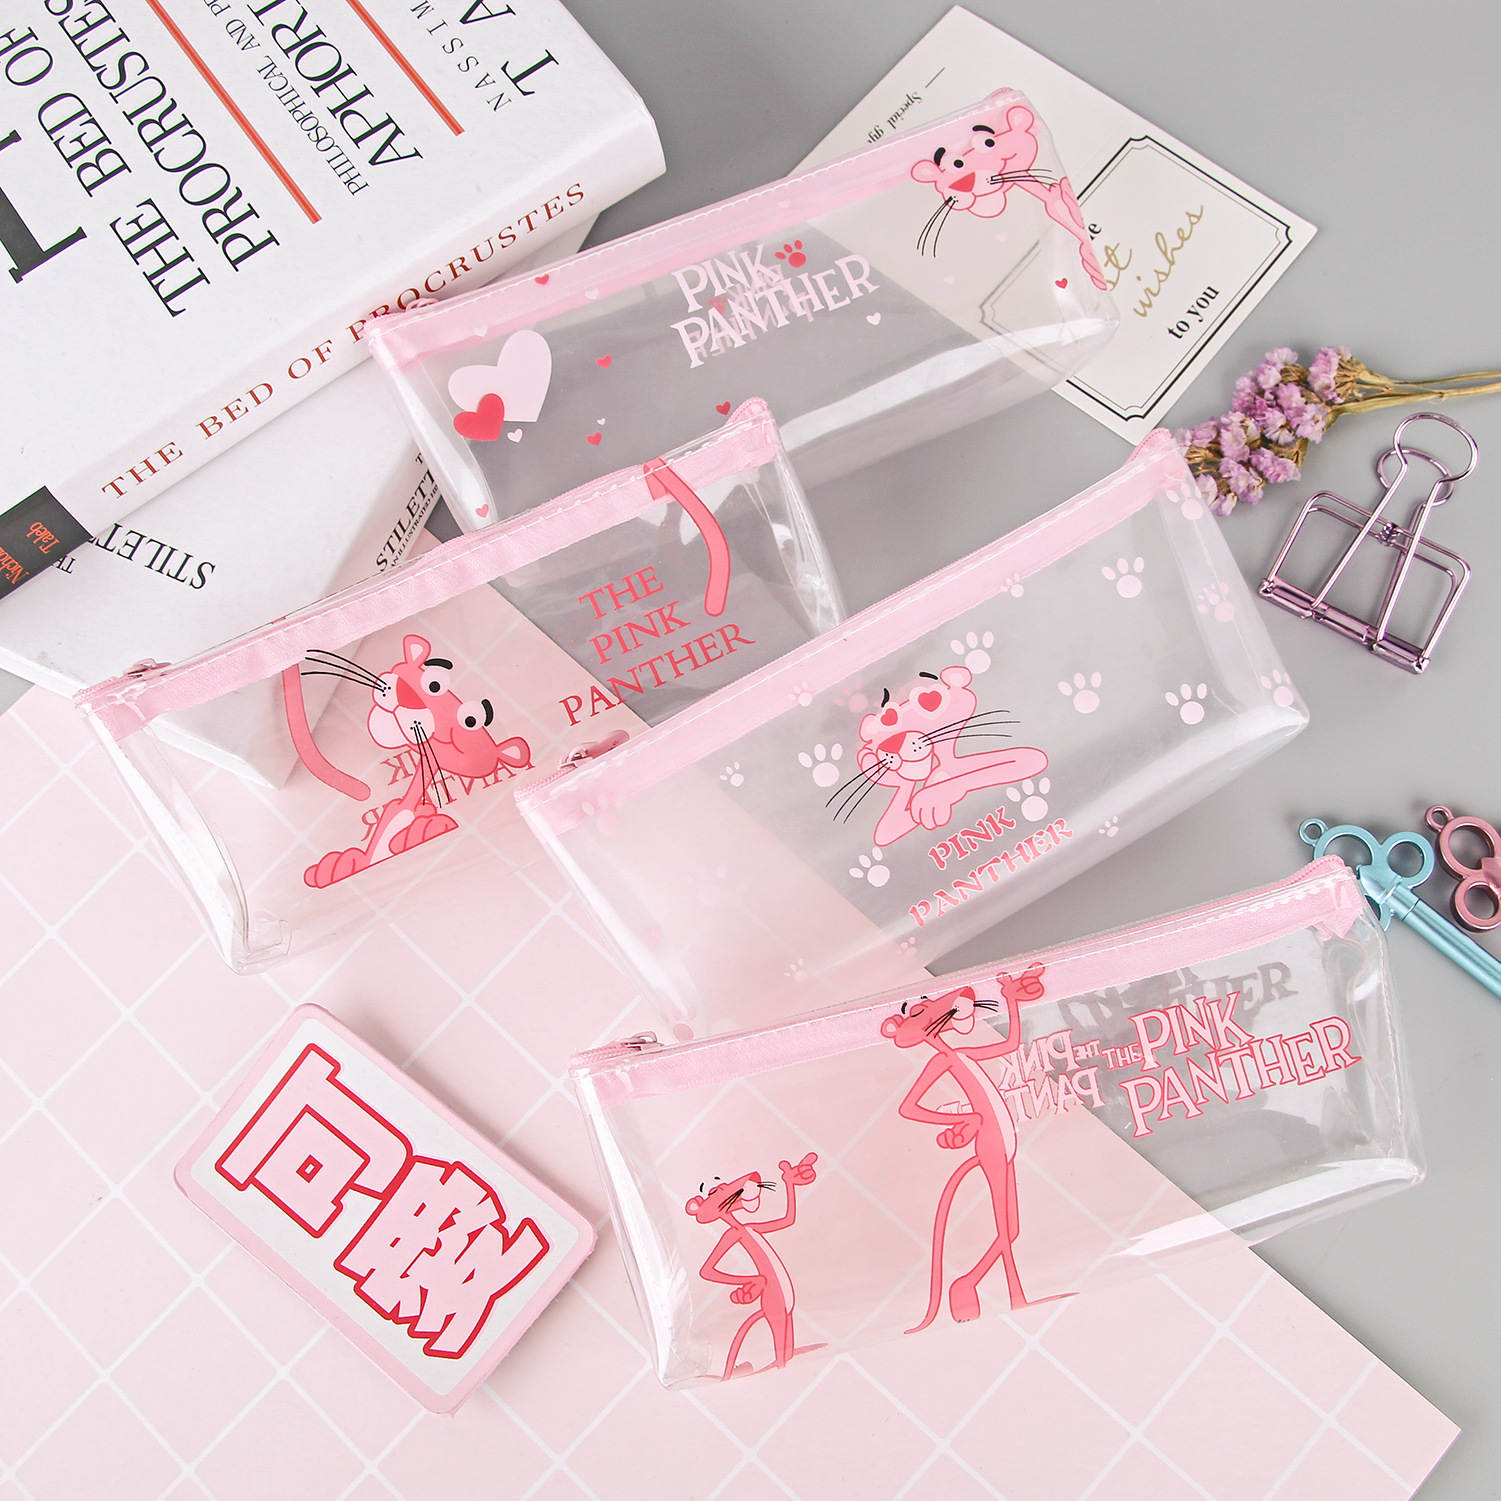 Cute Pink Panther Pencil Pouch Transparent Waterproof Korean Bag Pencil Case Pen Bags Cosmetic Pouch For Girls And Boys